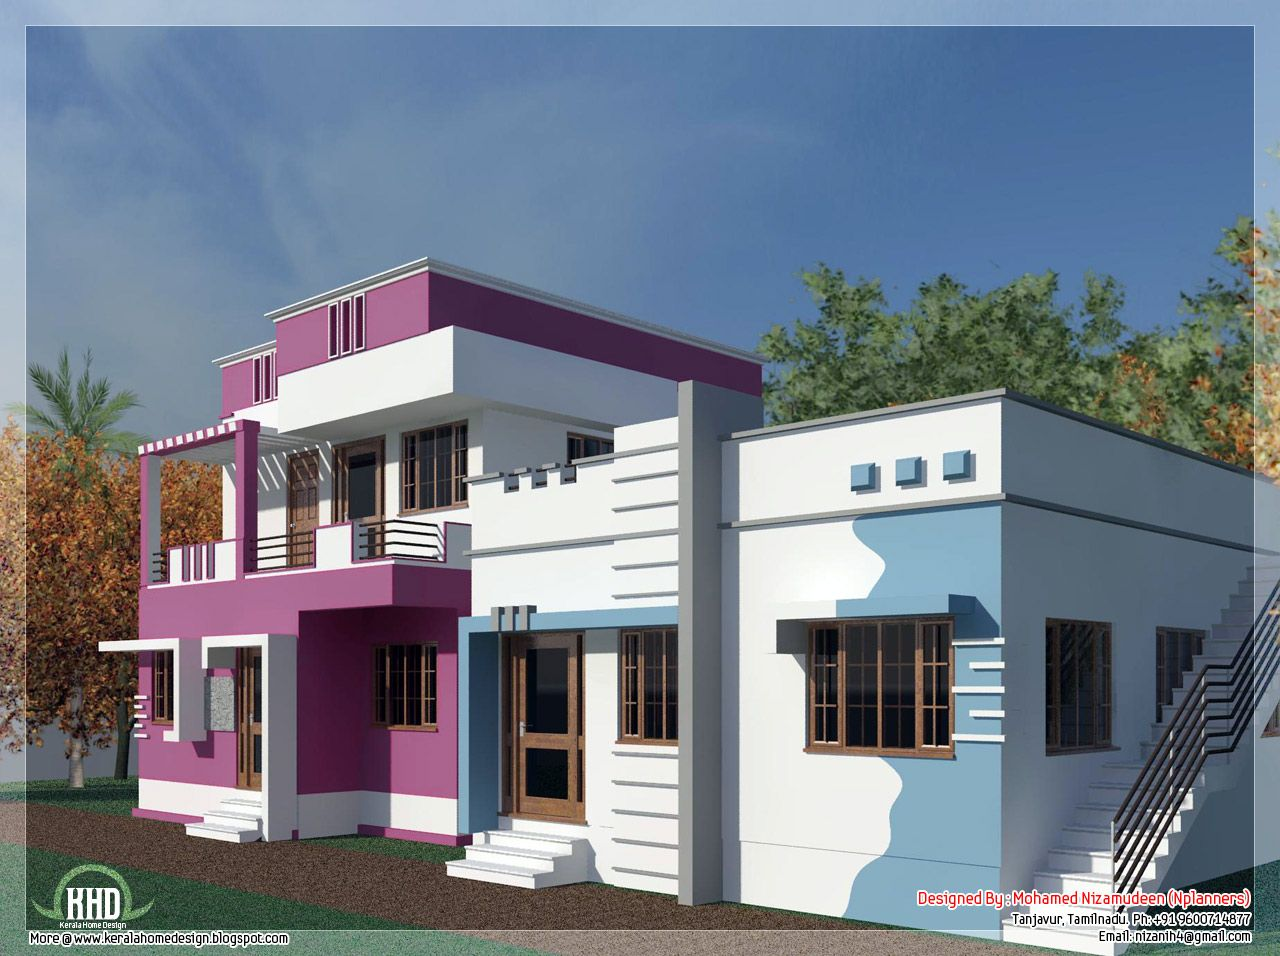 Tamilnadu model home design in 3000 sq.feet | Smallest house ...